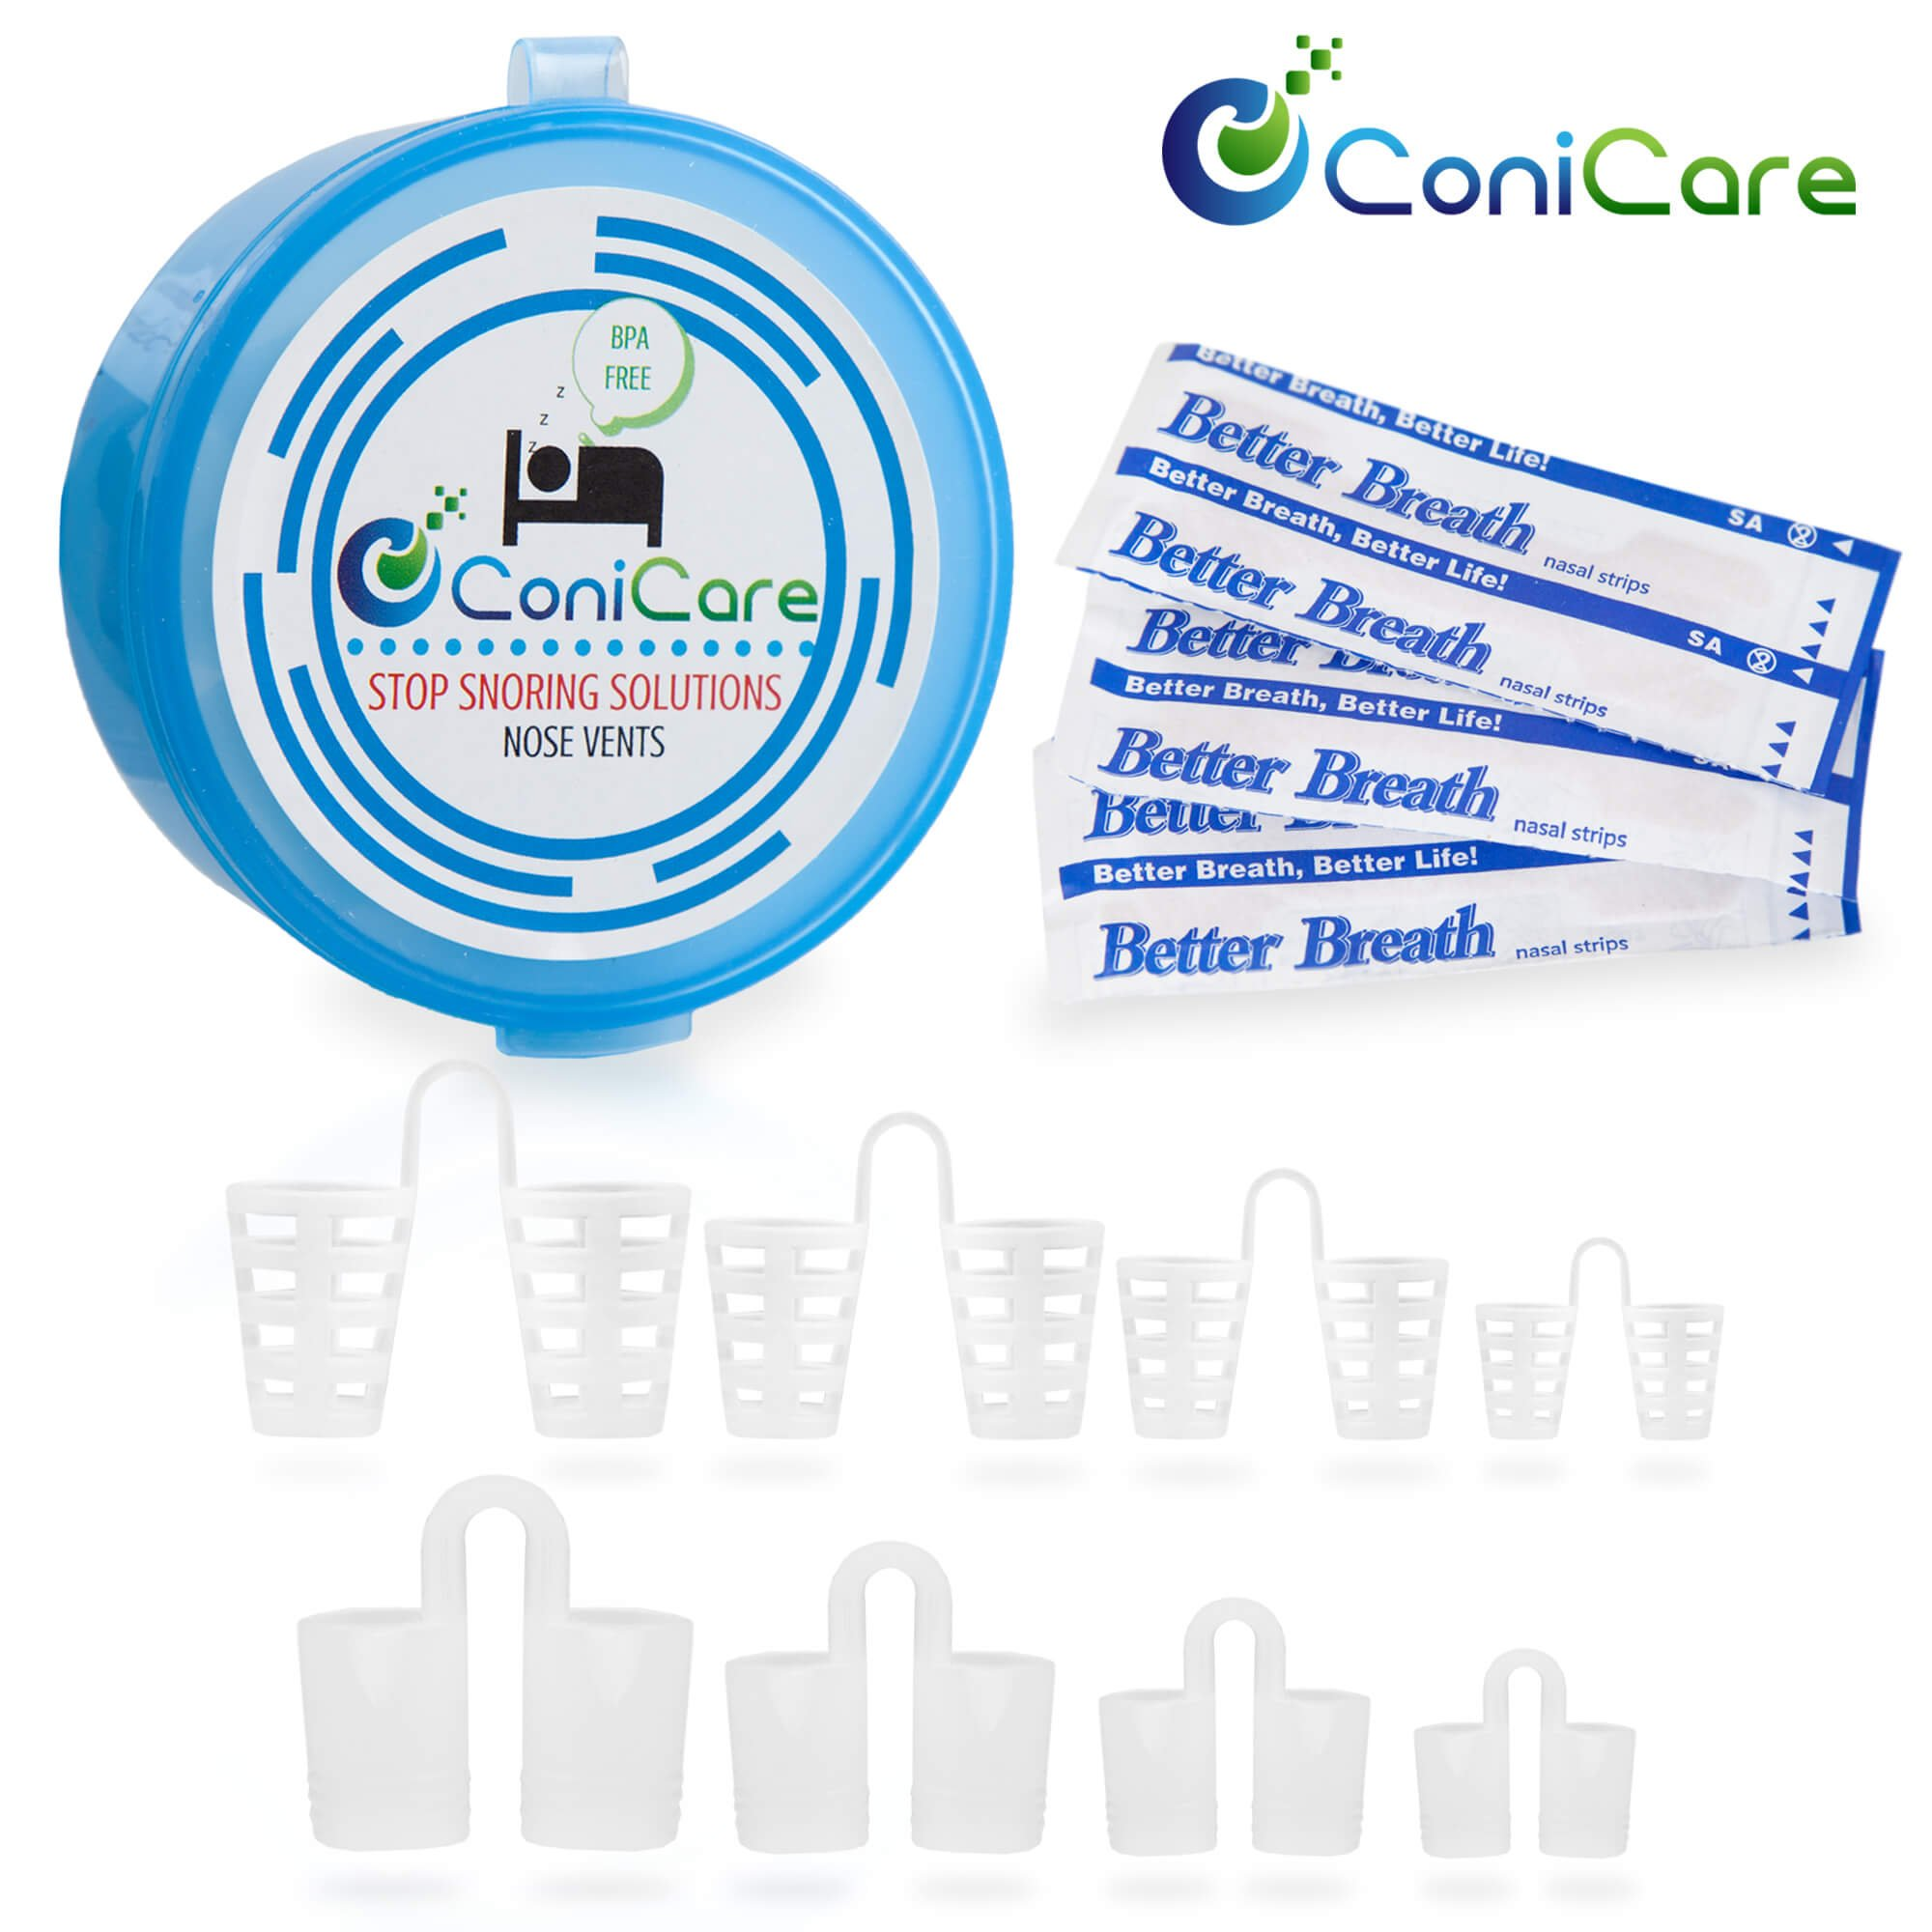 Conicare Snoring Solution Nose Vent Snore Stopper Kit with Nasal Dilator Strips and Ebook - Natural Premium Anti Snoring Device is Comfortable and Provides Instant Relief 19 Piece Value Kit Aid